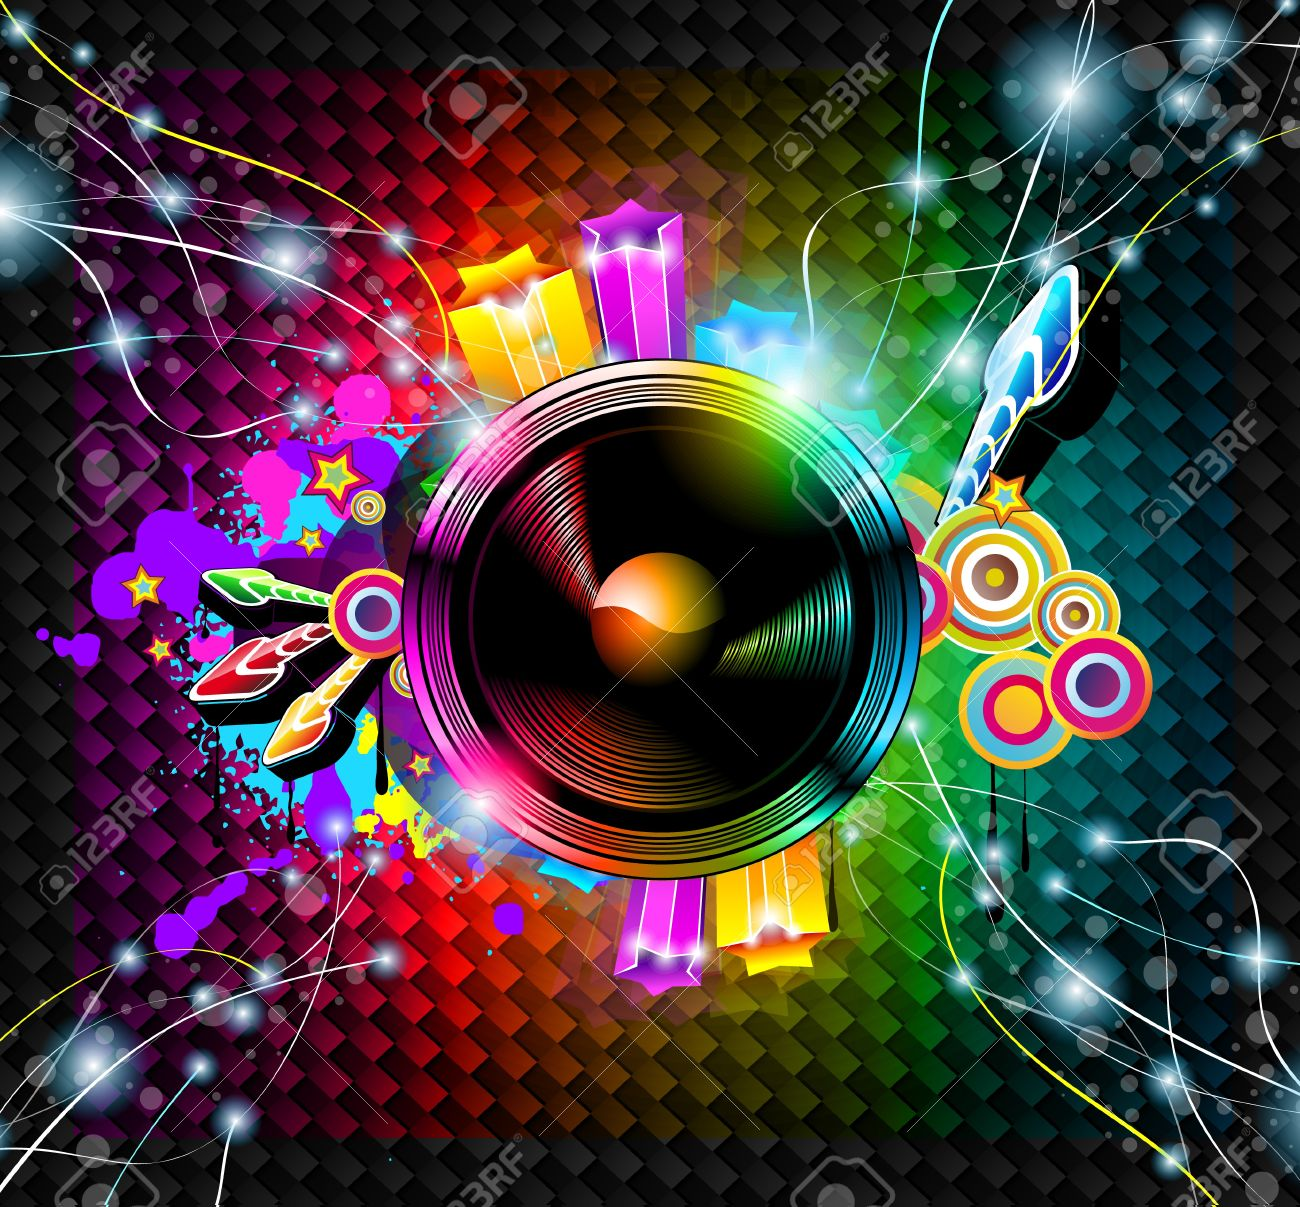 Disco Event Background with and Explosion of colurs! Ready for flyers and posters. Stock Vector - 9595297